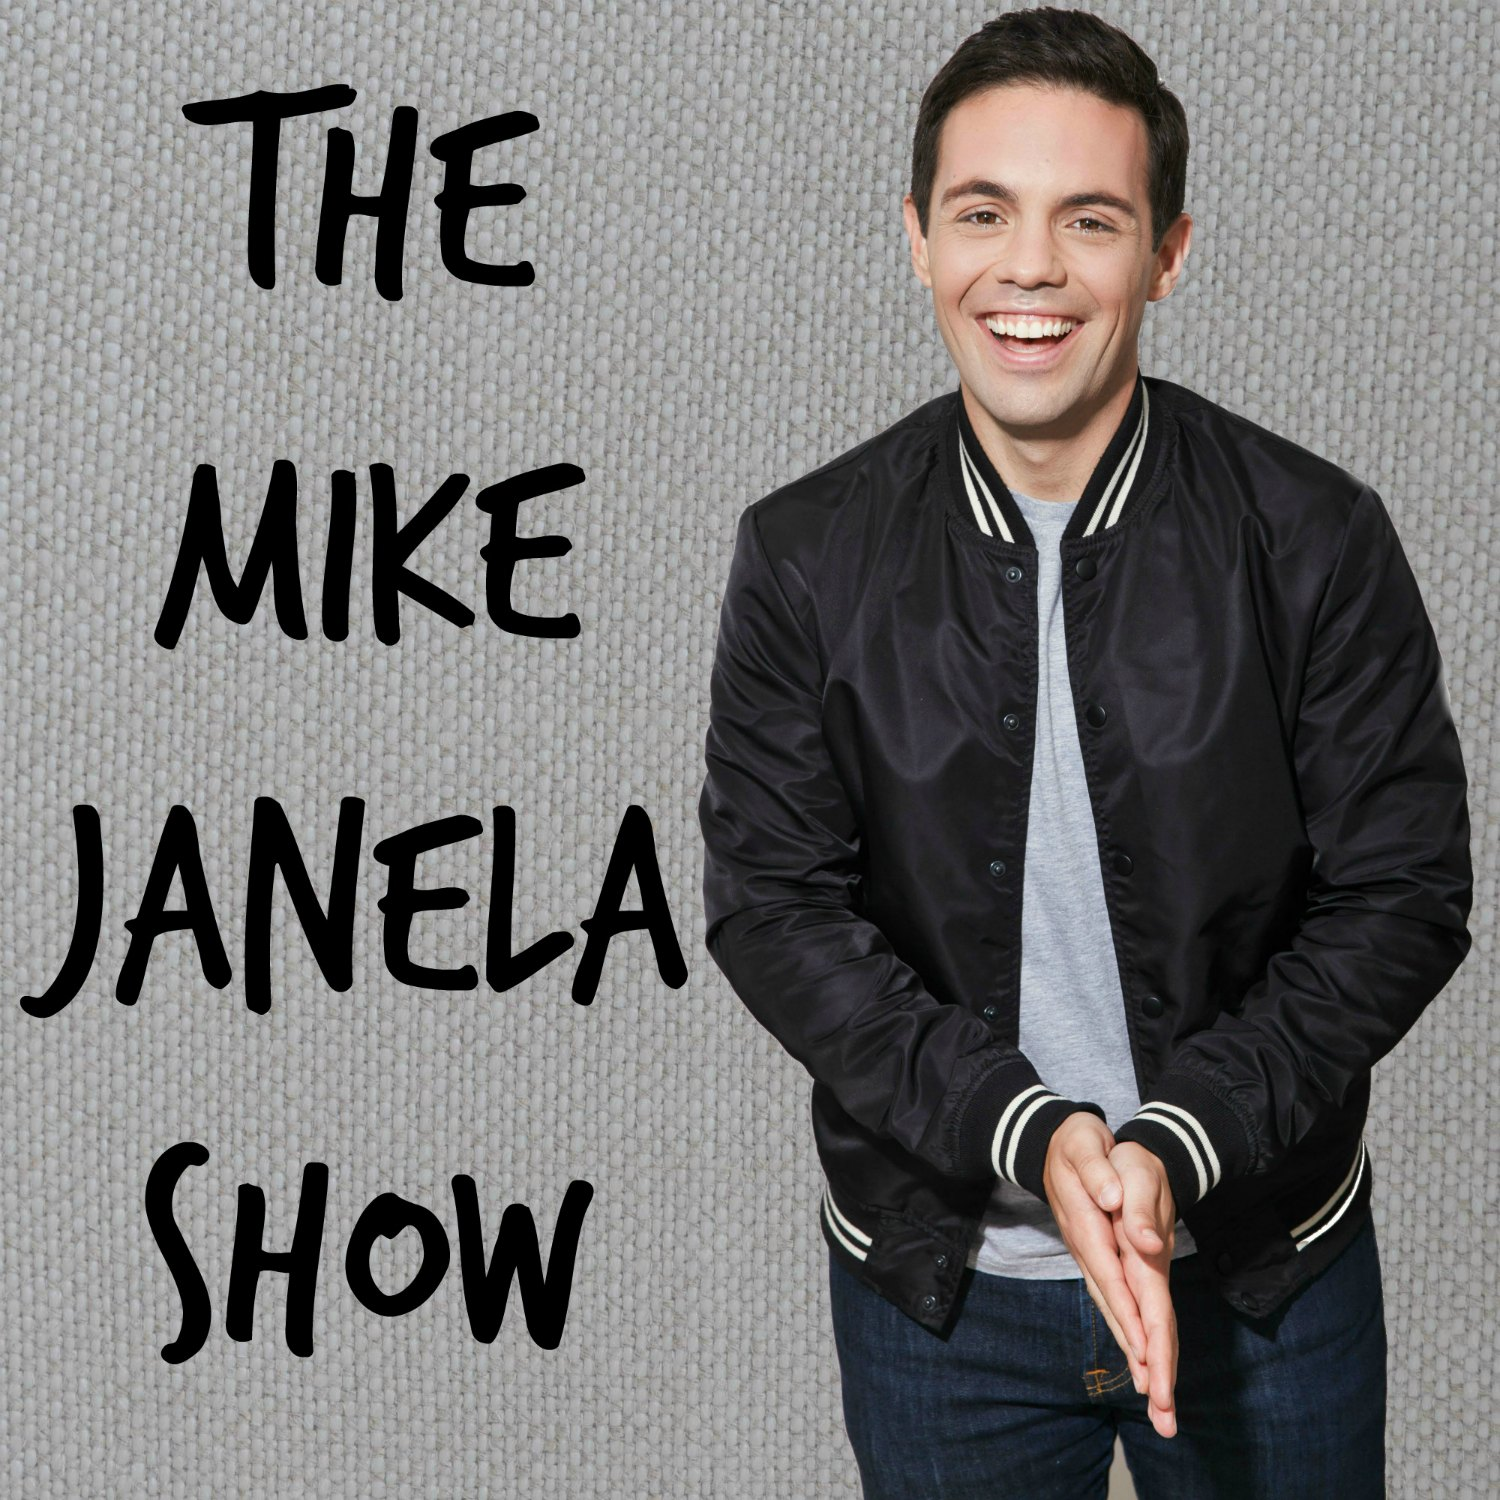 The Mike Janela Show